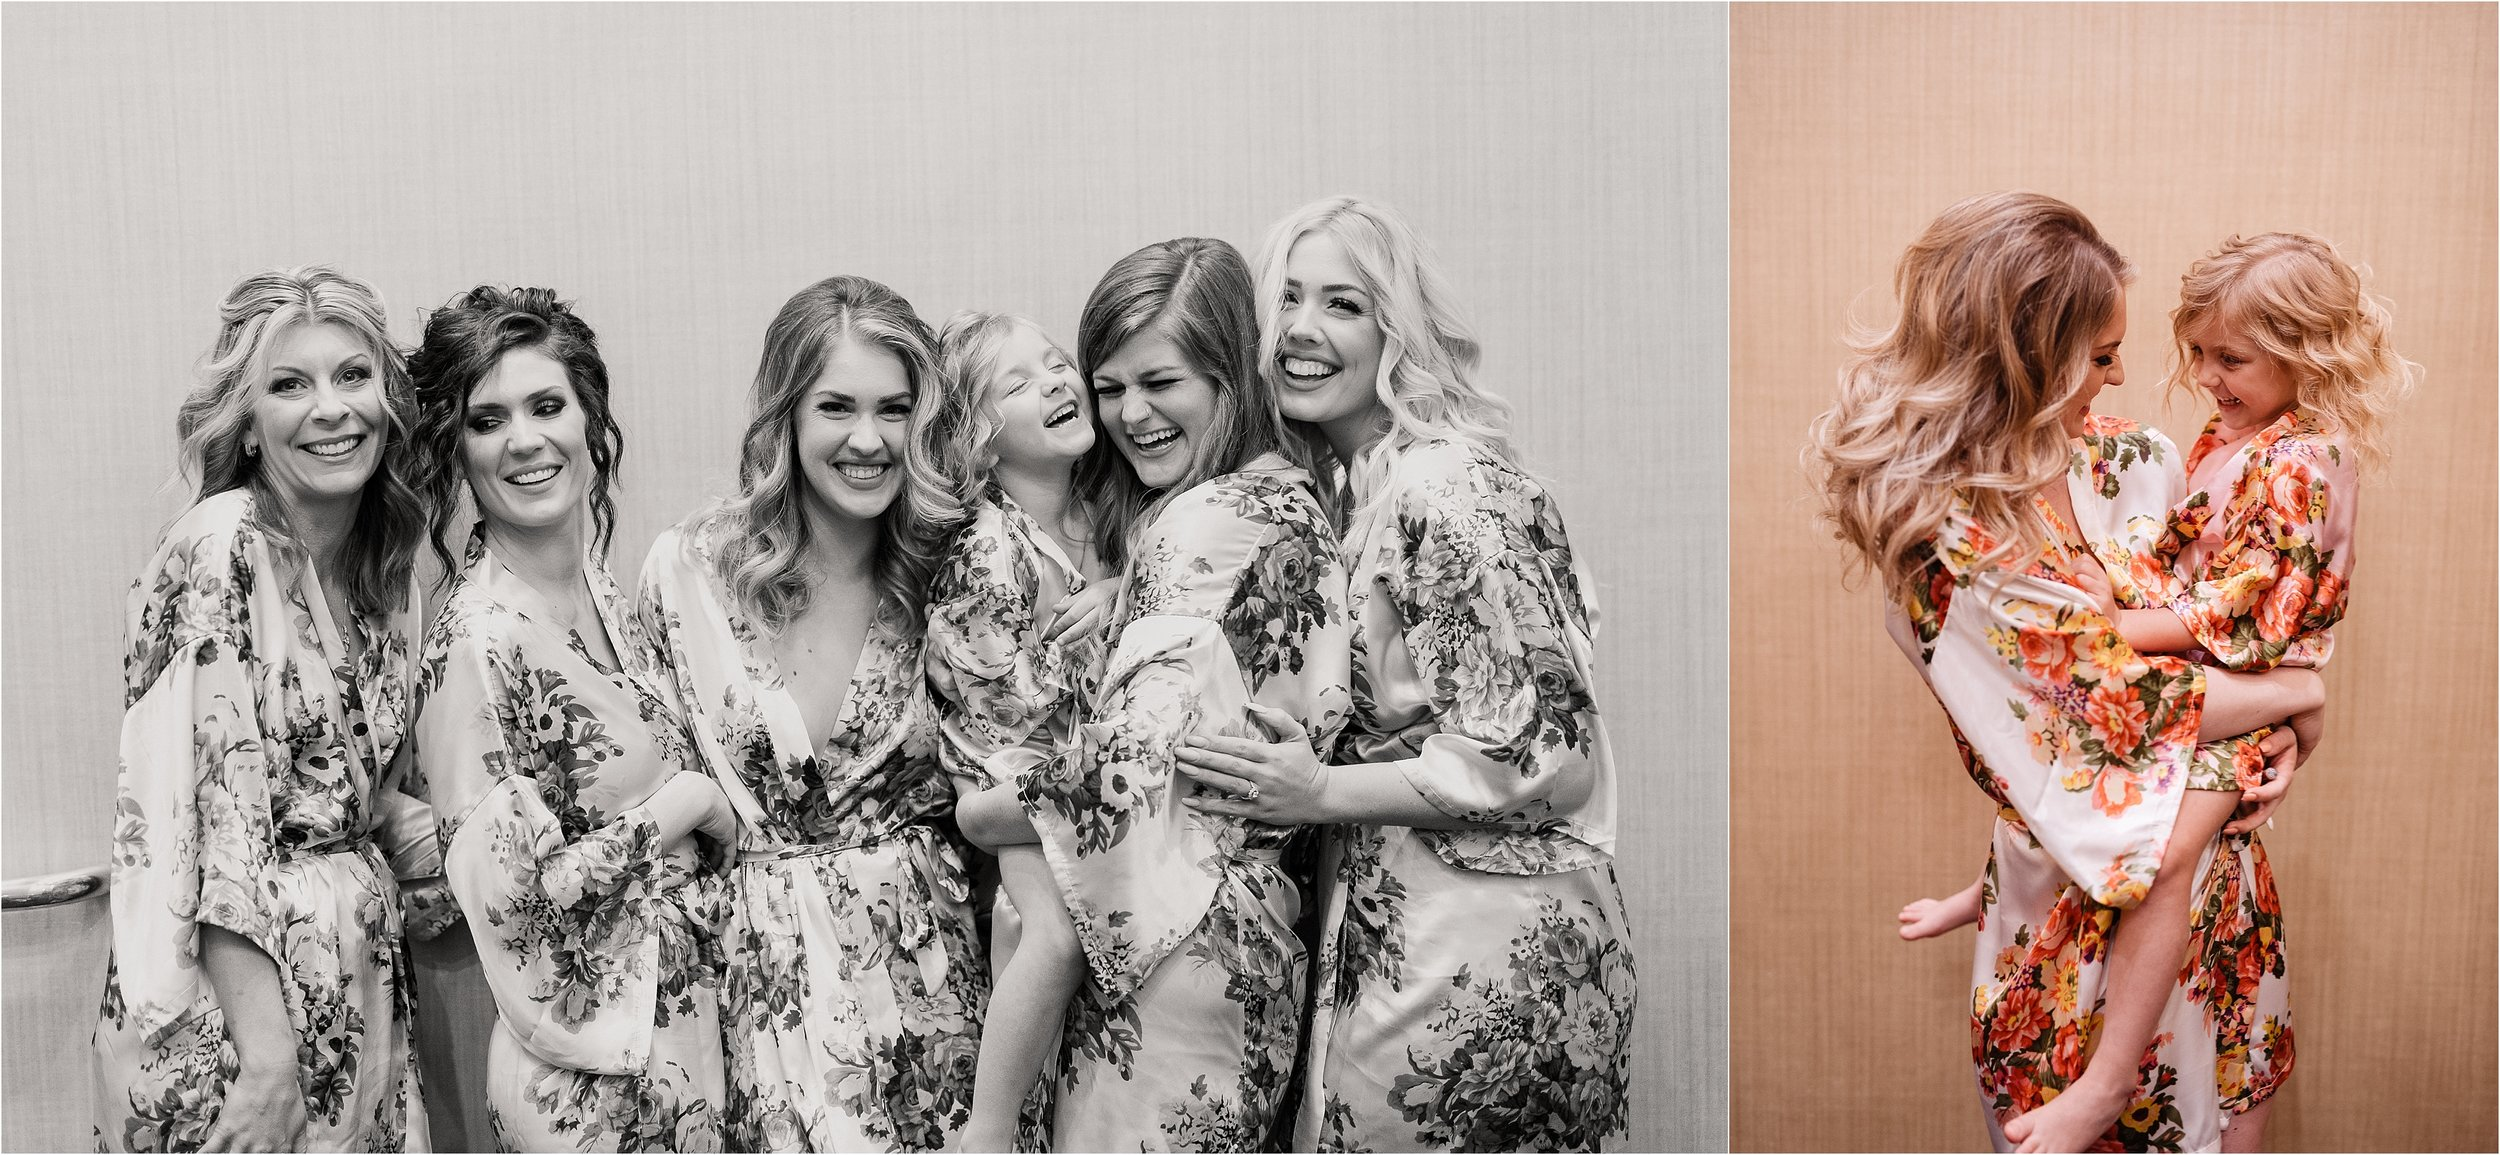 oklahoma wedding photographer hair makeup robes matching outfits bridal party getting ready bridesmaids maid of honor dressing buttons lace mother of bride black&white black white flower girl